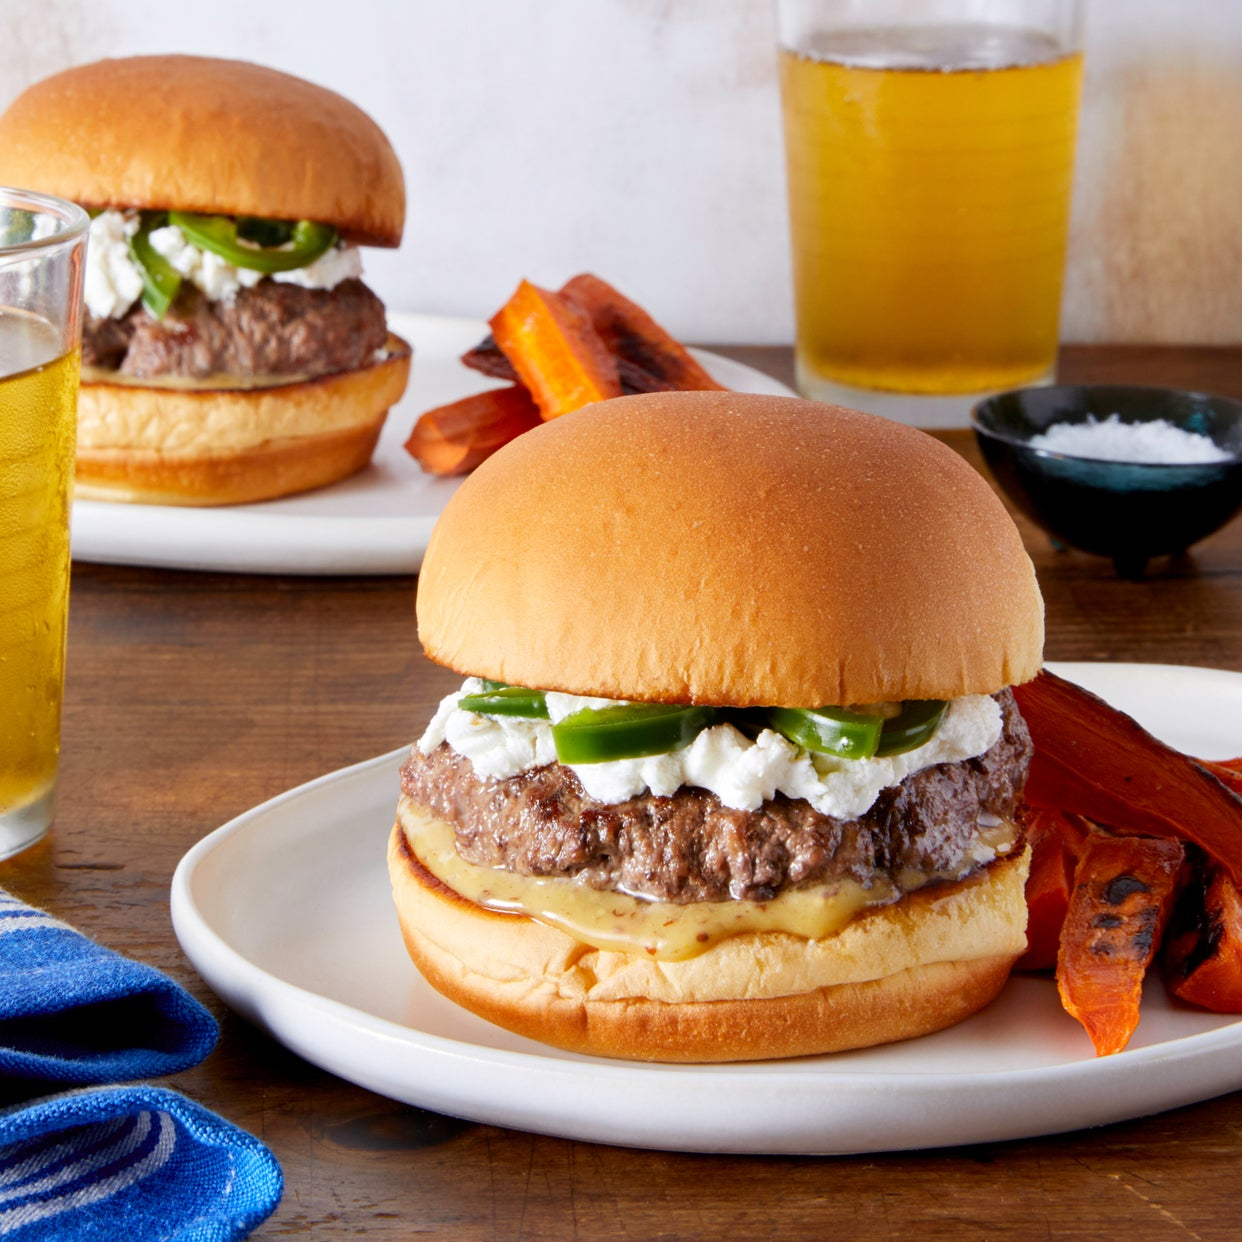 Jalapeño Cheeseburgers with Carrot Fries